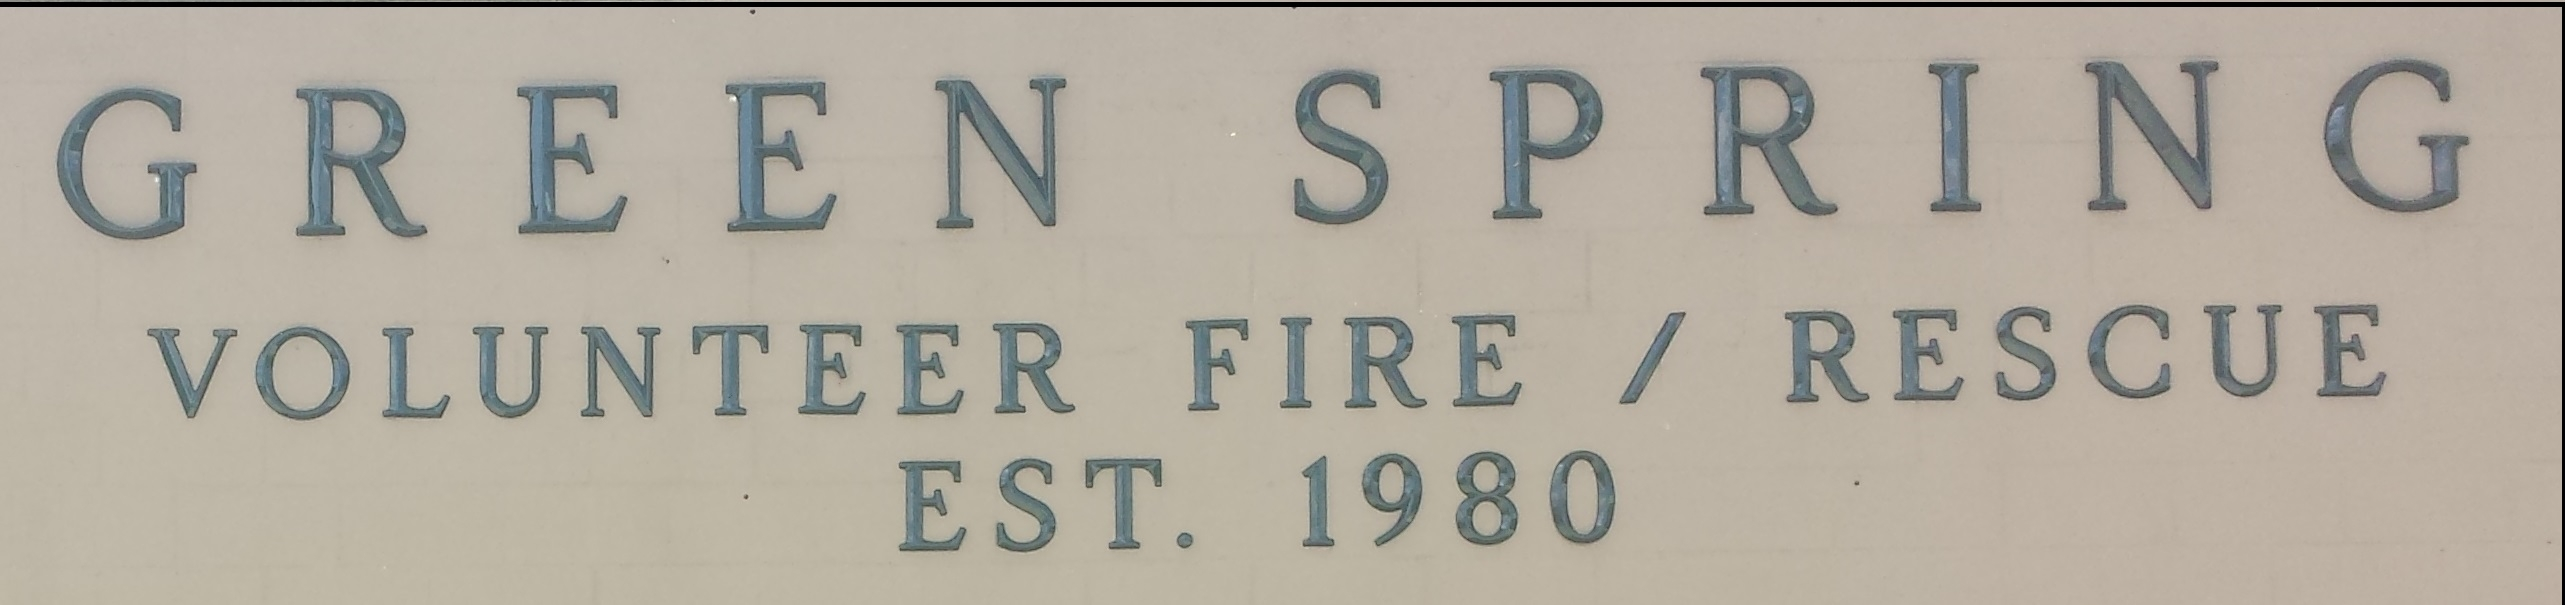 Green Spring Vol. Fire Department Inc.